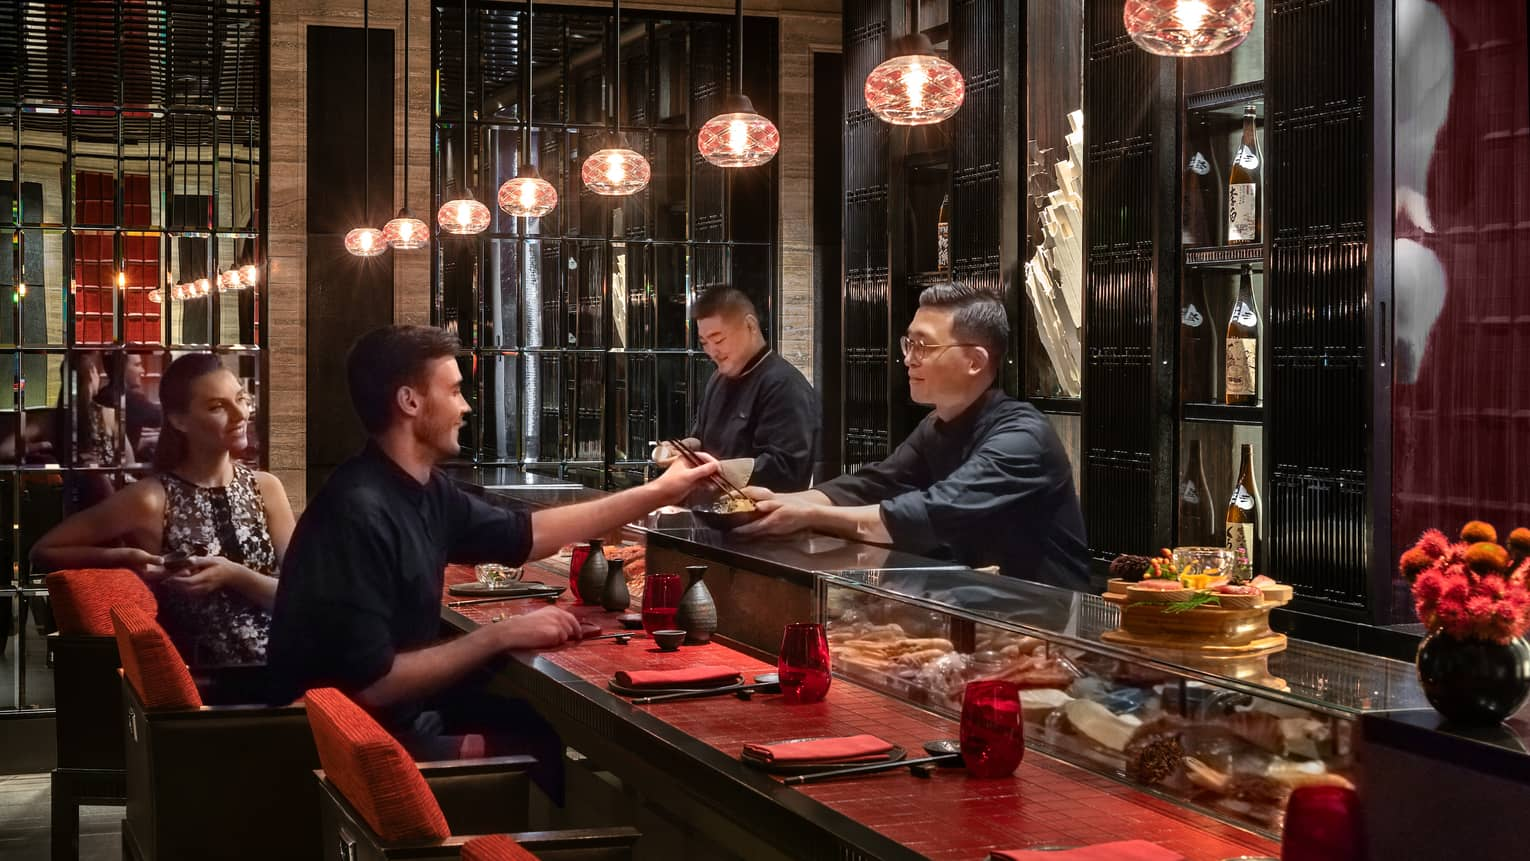 Sintoho chefs behind sushi bar across from couple, man with chopsticks samples food in bowl